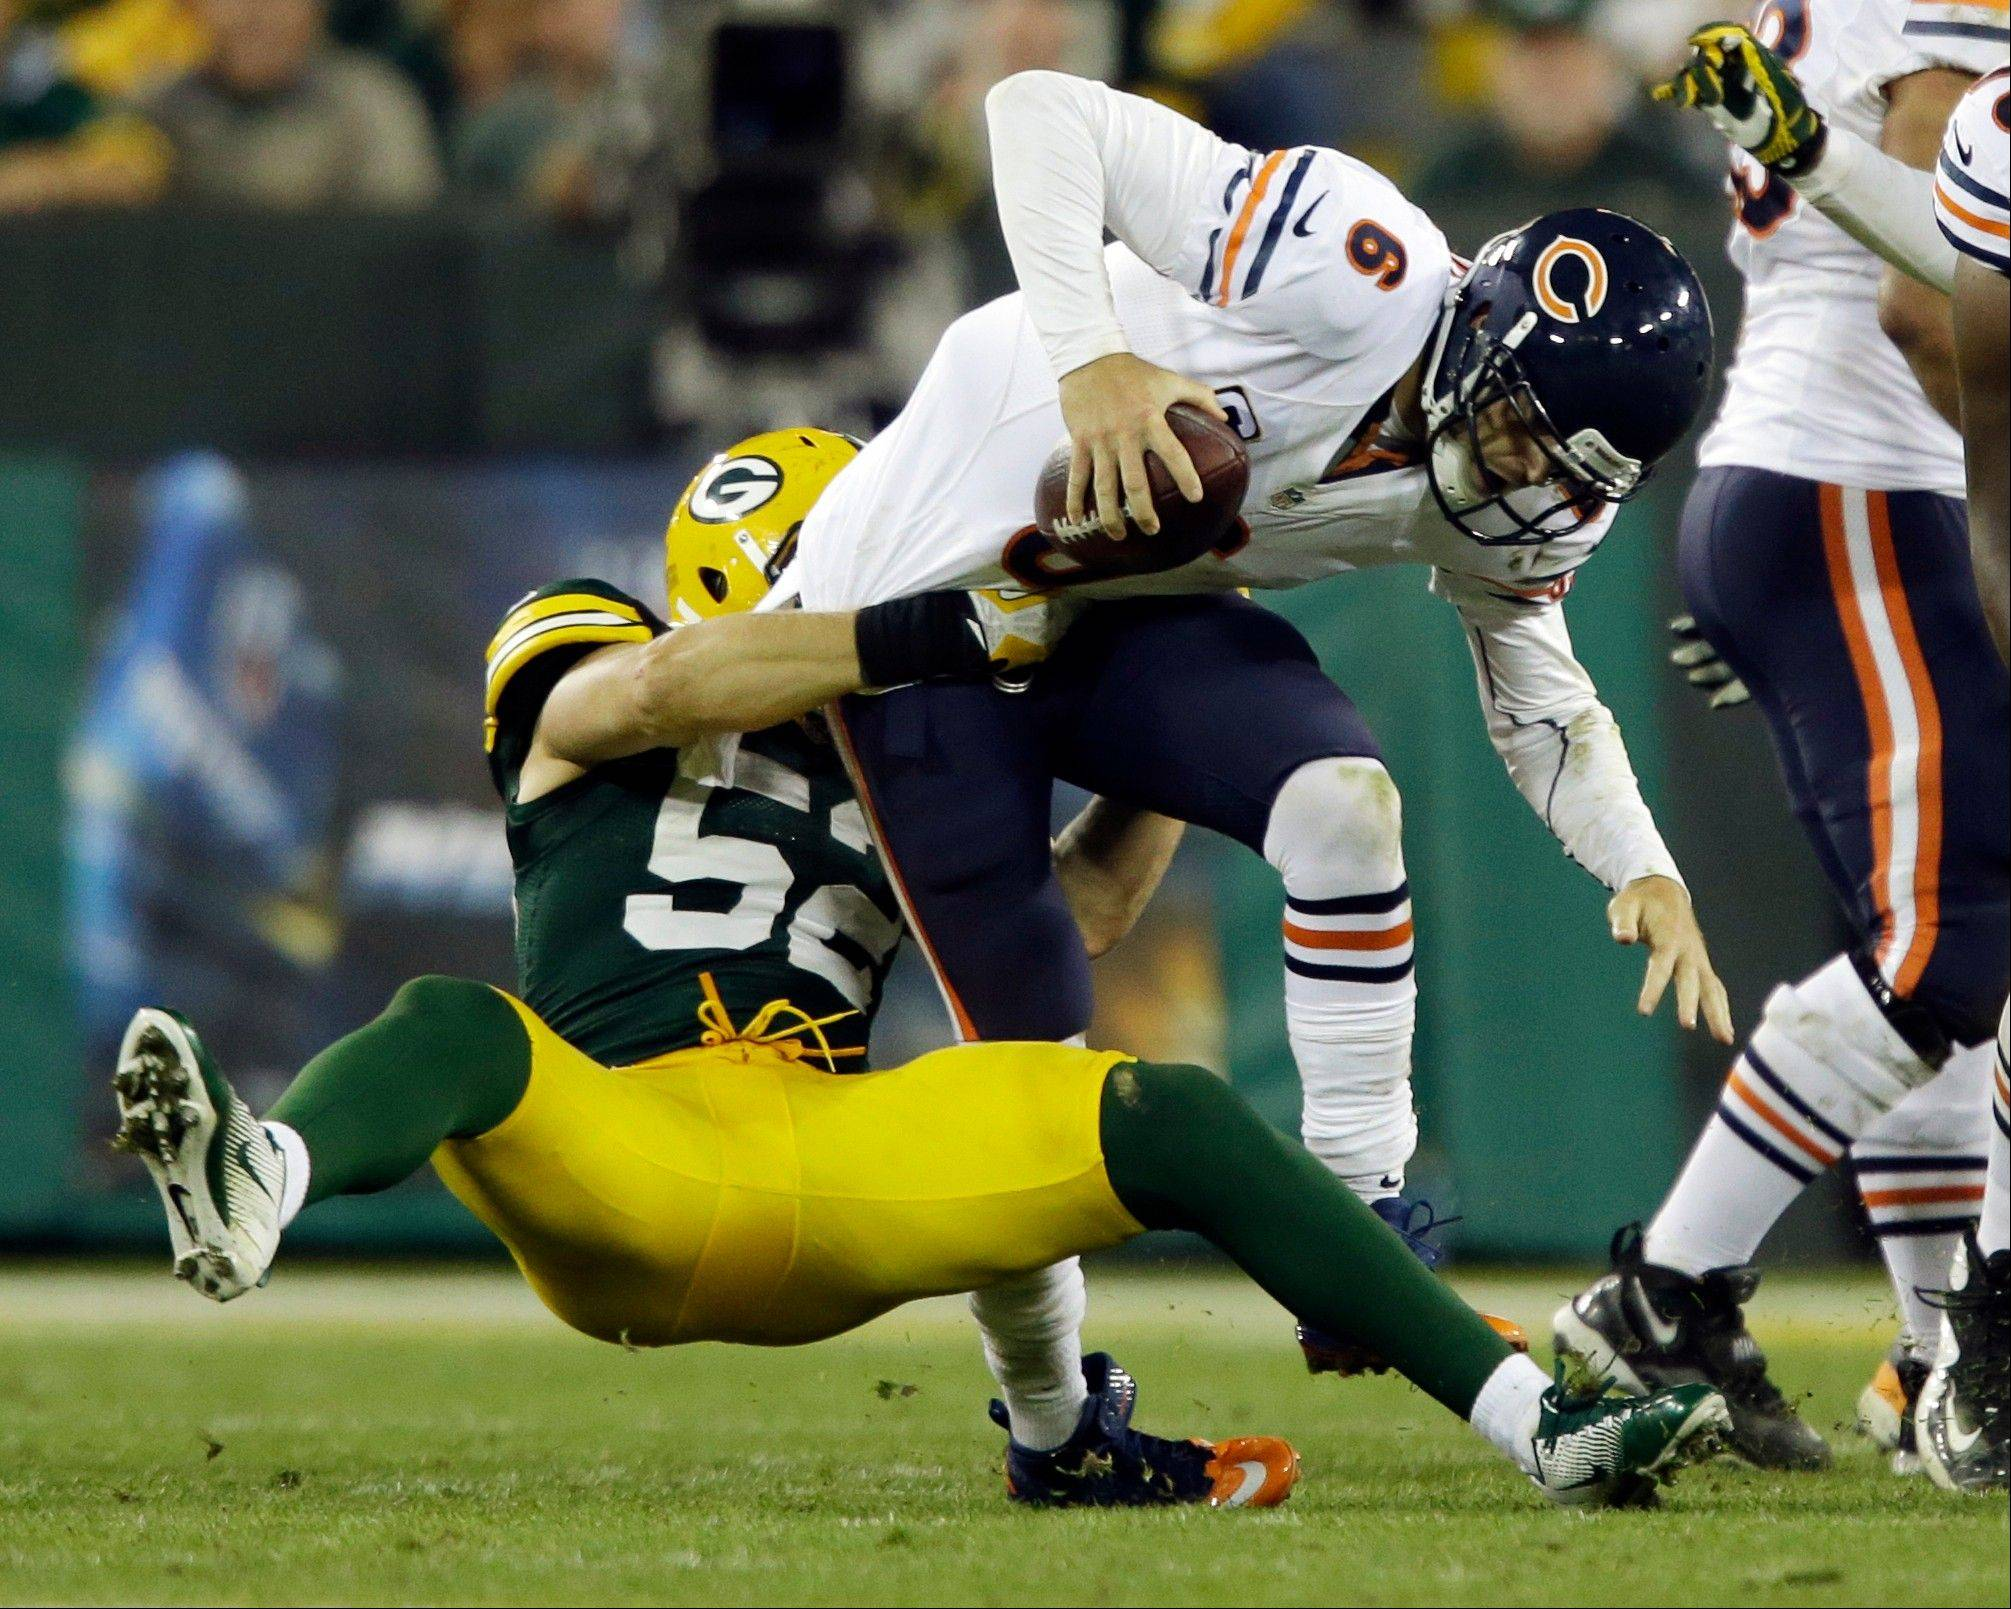 Green Bay Packers linebacker Clay Matthews sacks Bears quarterback Jay Cutler Thursday during the second half .